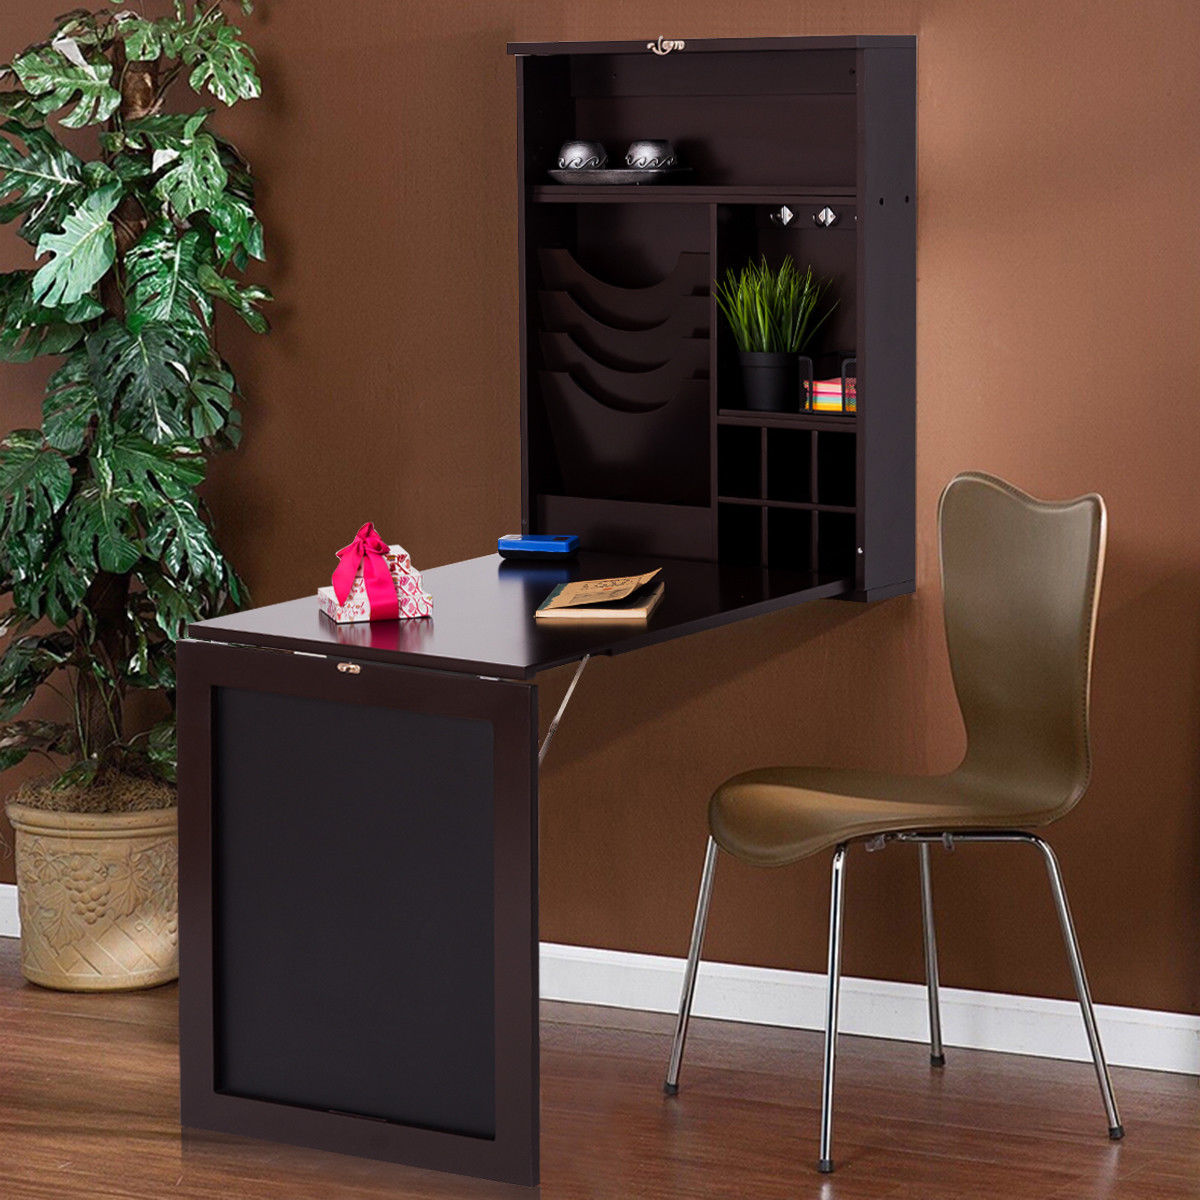 Costway Wall Mounted Table Convertible Desk Fold Out Space